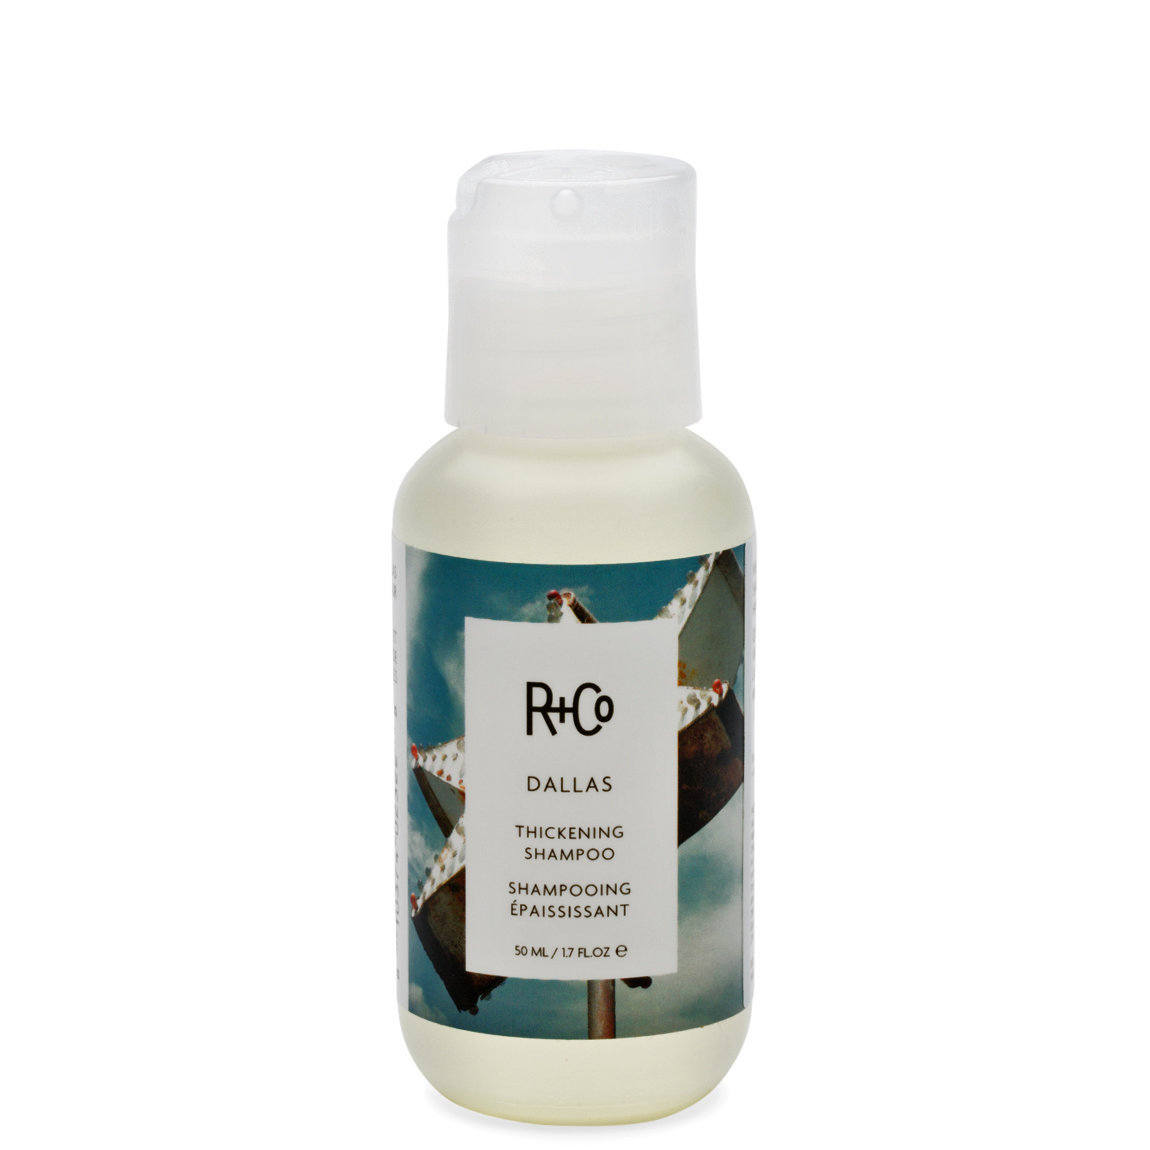 R+Co Dallas Thickening Shampoo 1.7 oz alternative view 1 - product swatch.